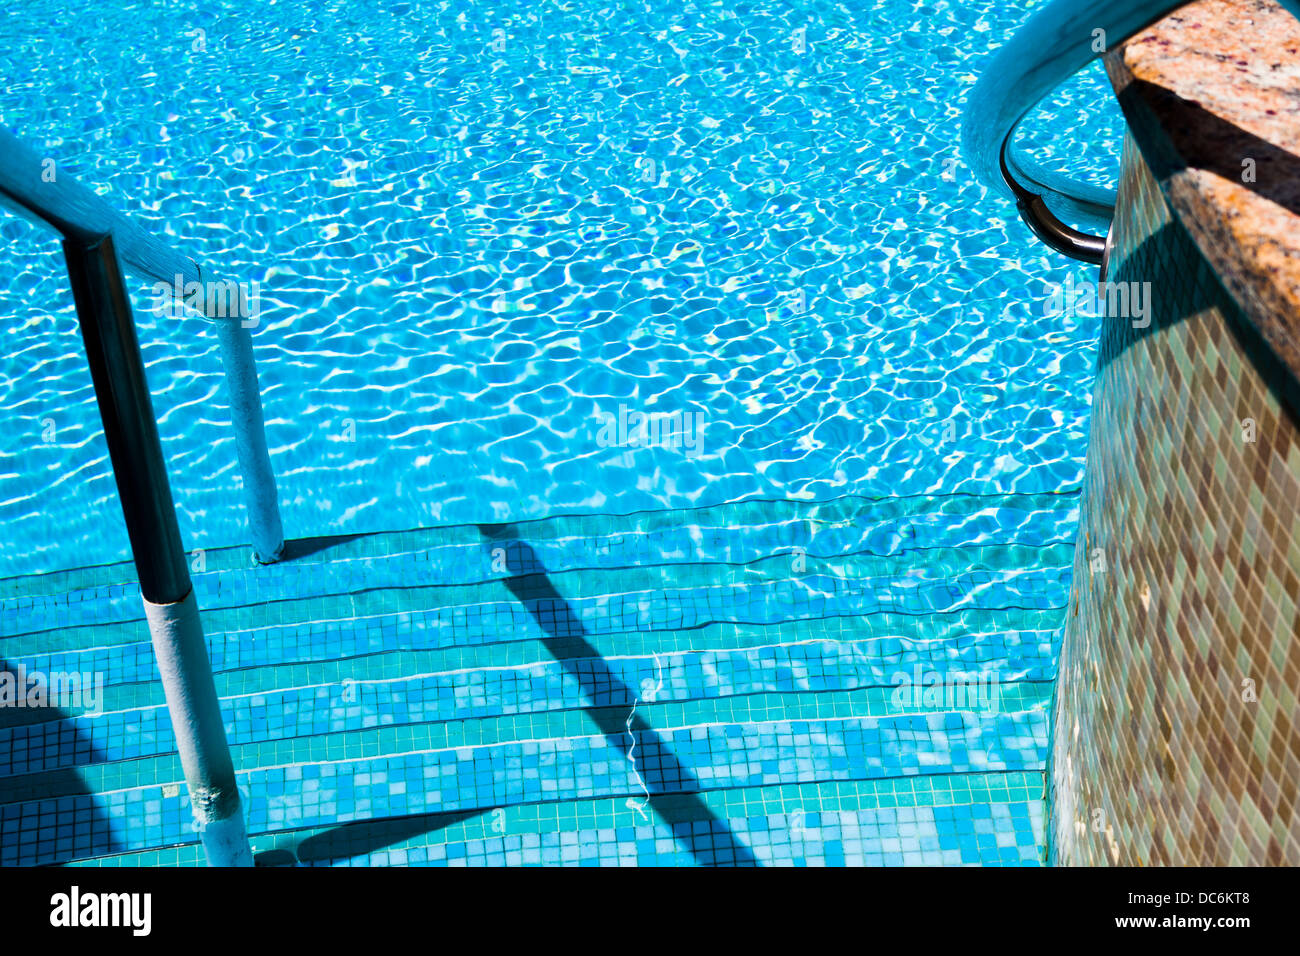 Ships safety rail stock photos ships safety rail stock - Northumbria university swimming pool ...